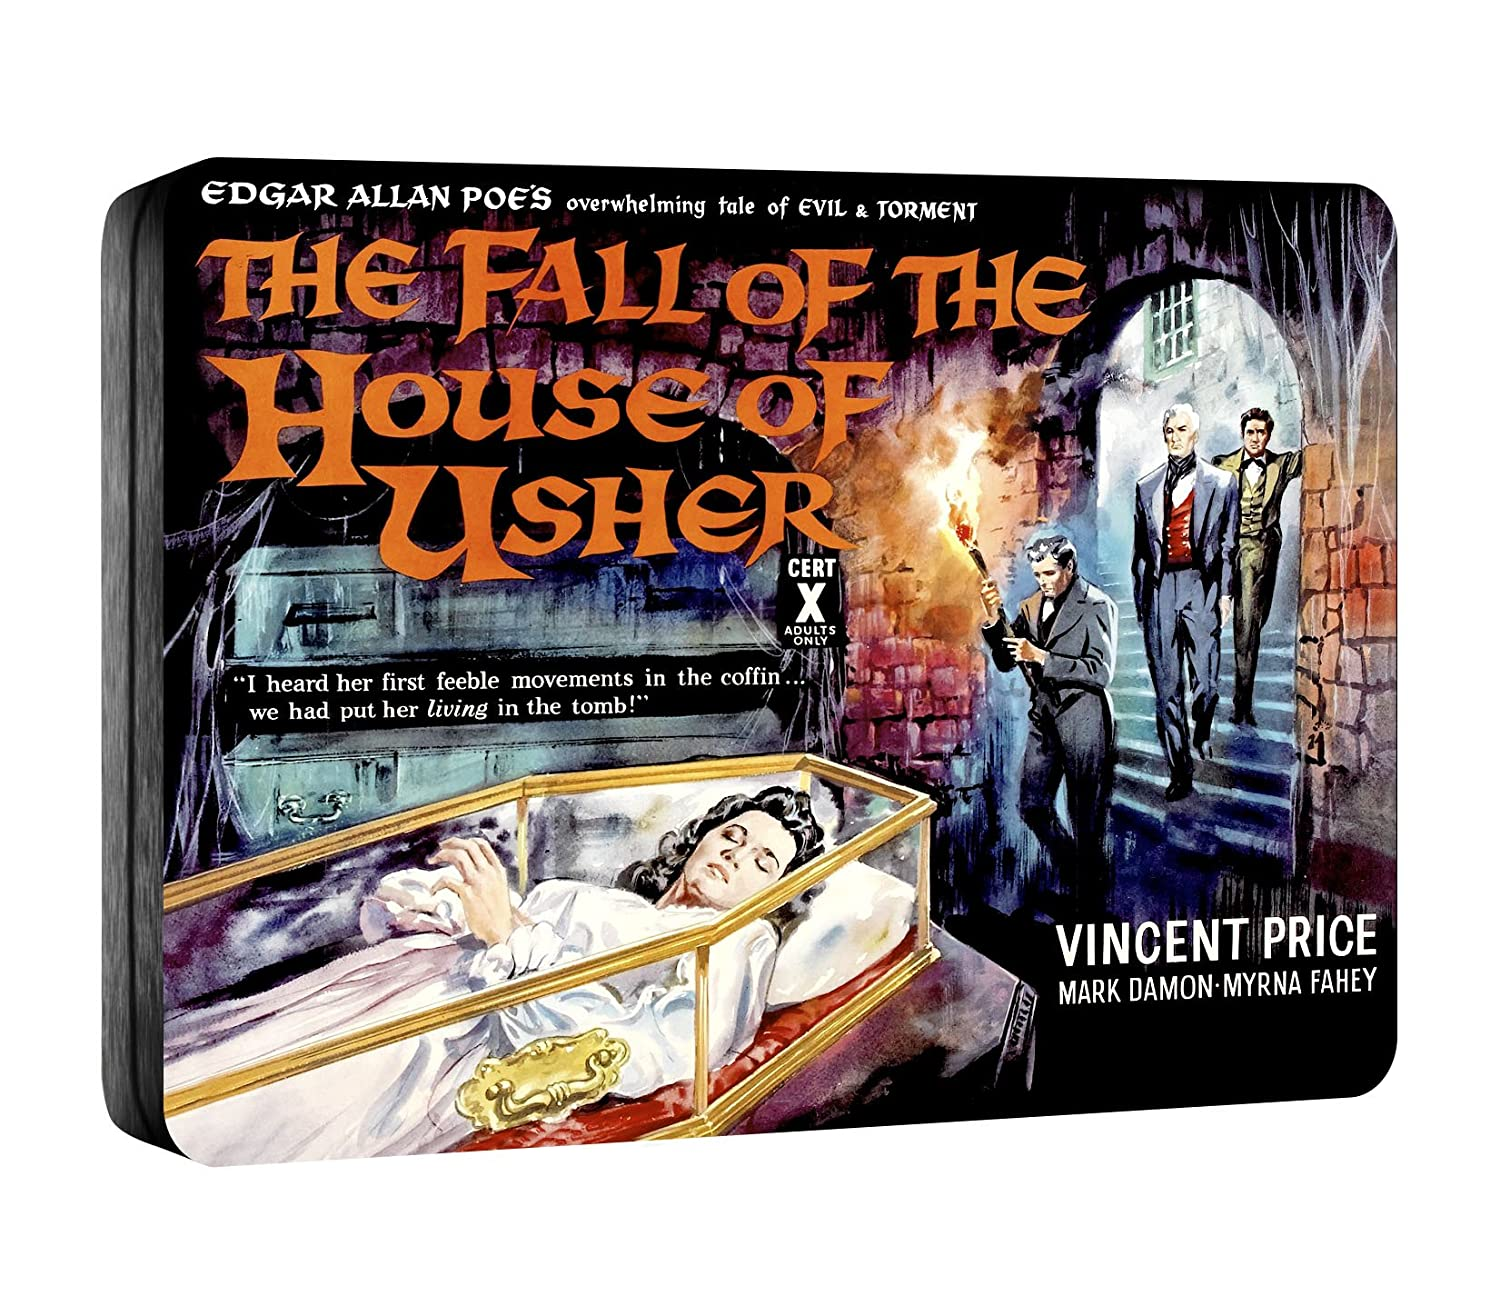 fall of the house of usher steelbook blu ray co uk fall of the house of usher steelbook blu ray co uk vincent price mark damon myrna fahey roger corman dvd blu ray